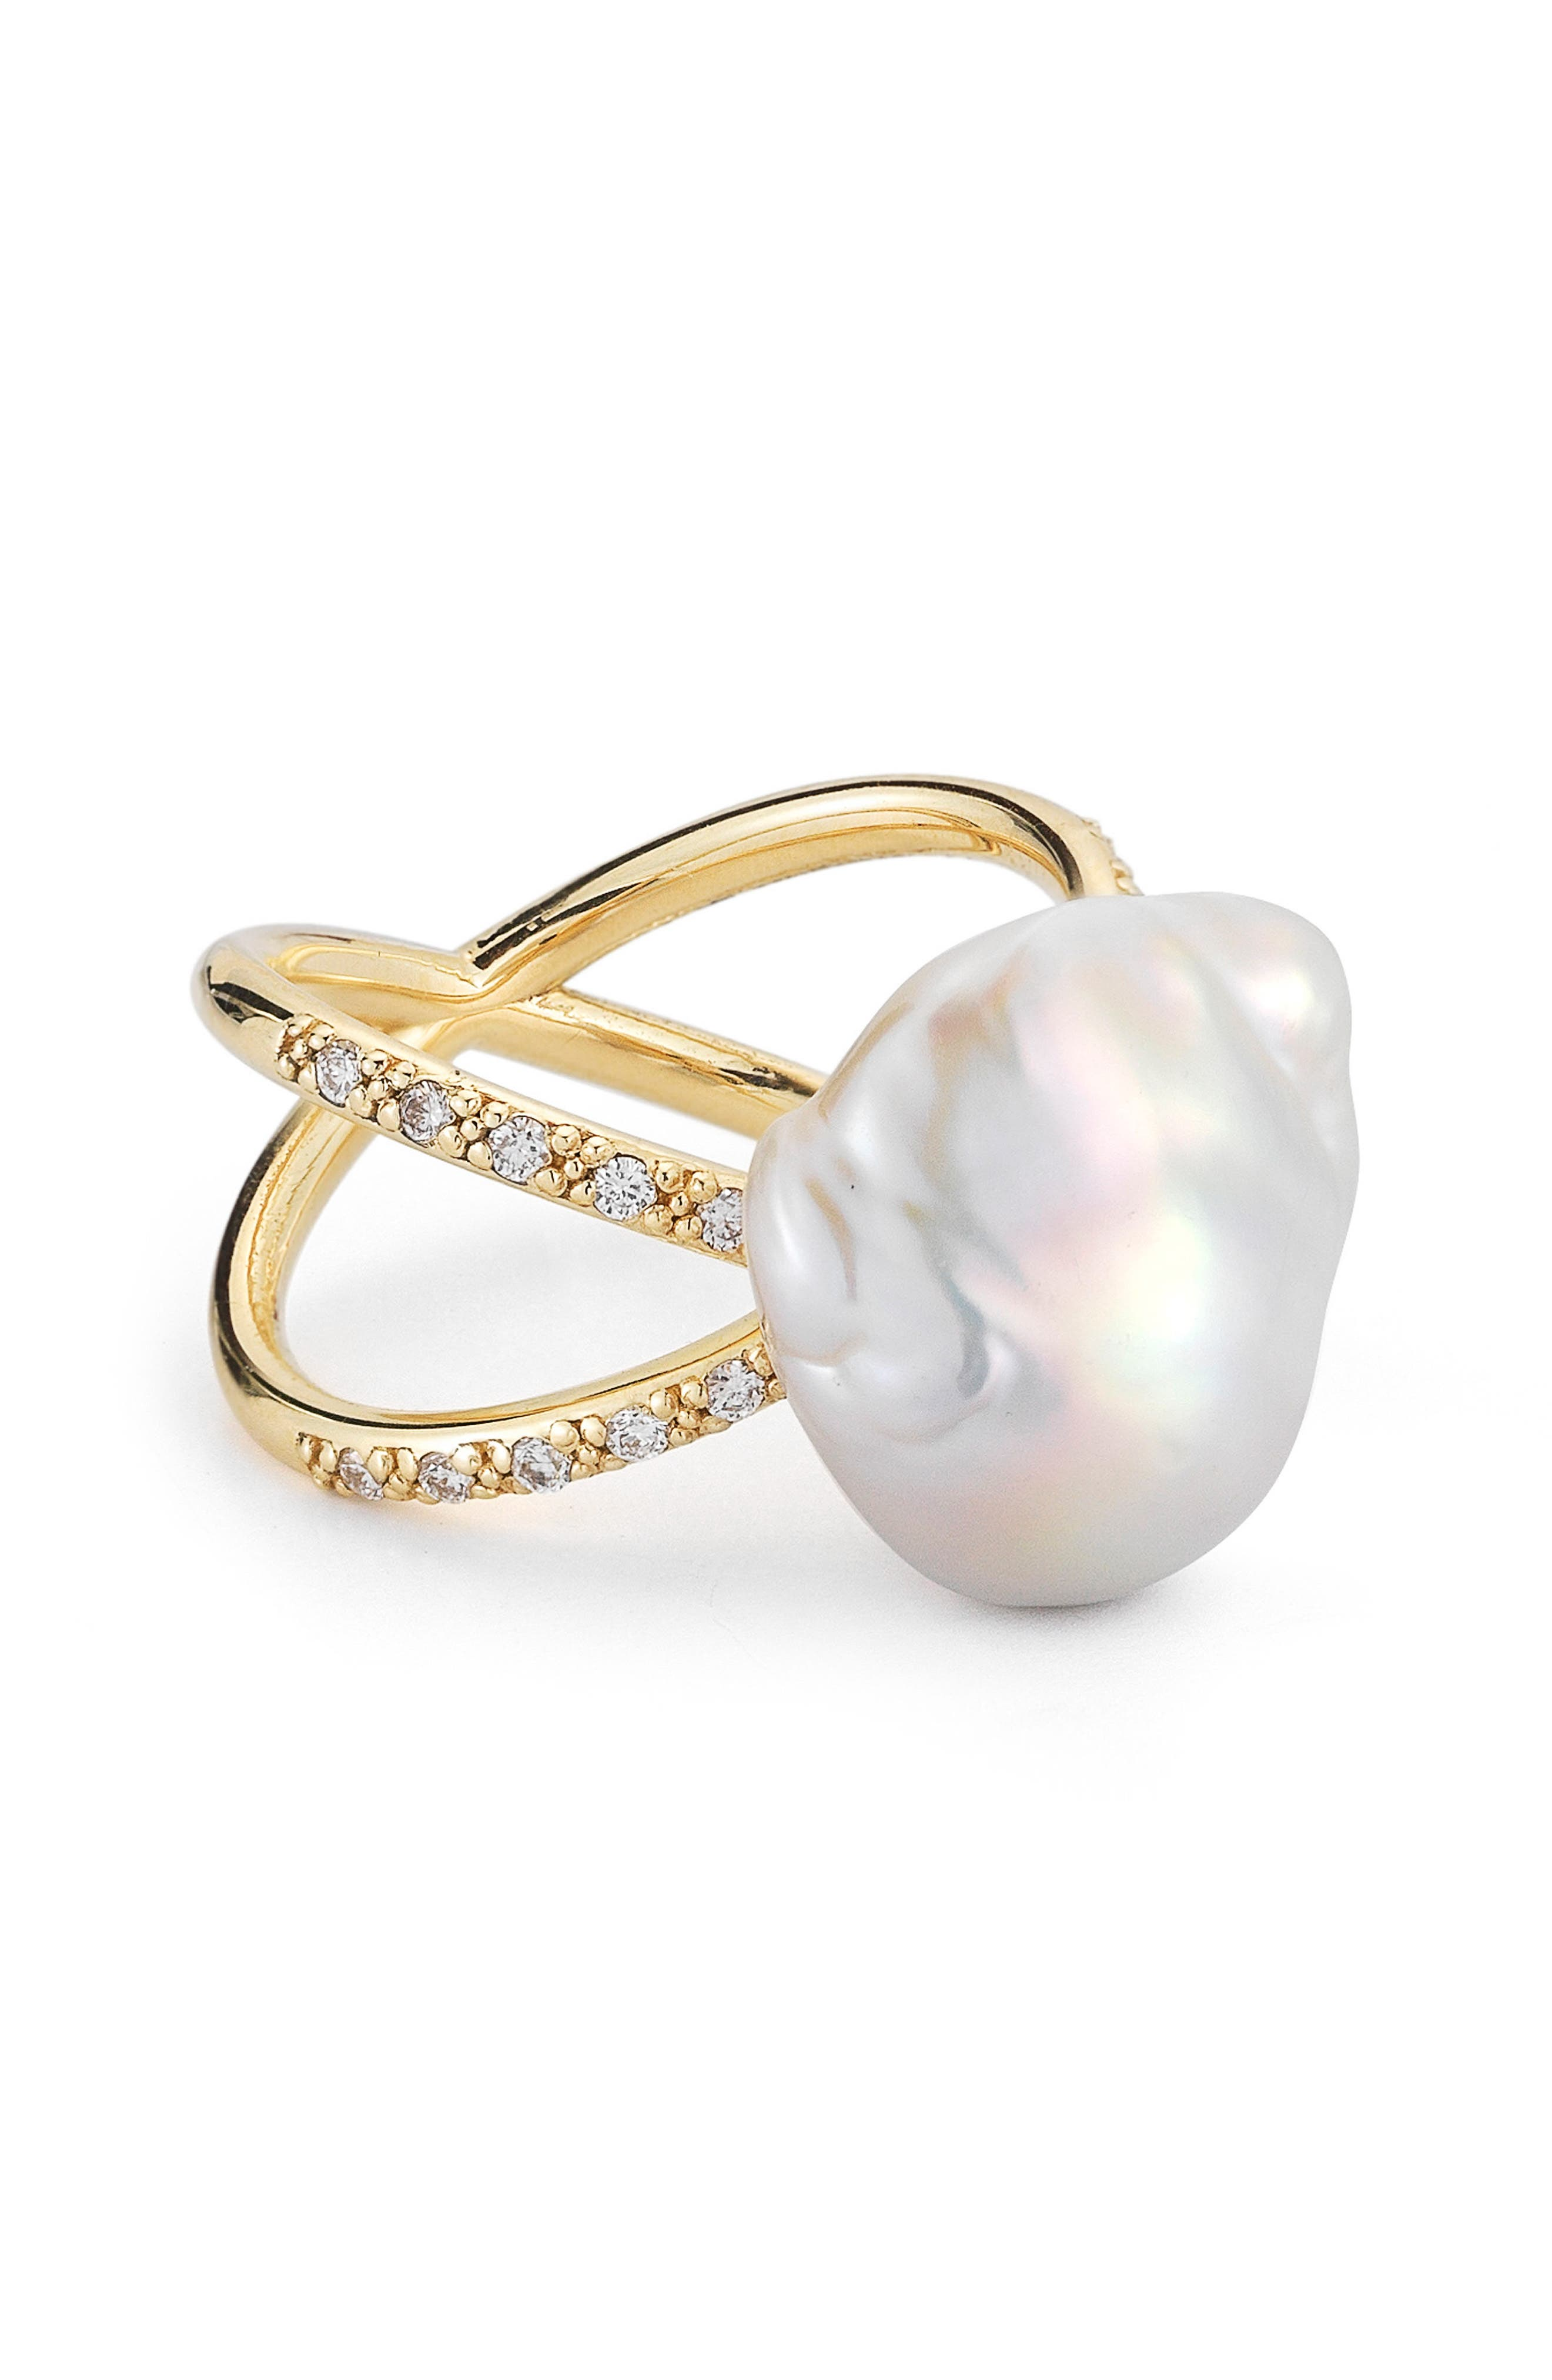 Pearl & Diamond Crossover Ring,                             Main thumbnail 1, color,                             YELLOW GOLD/ WHITE PEARL